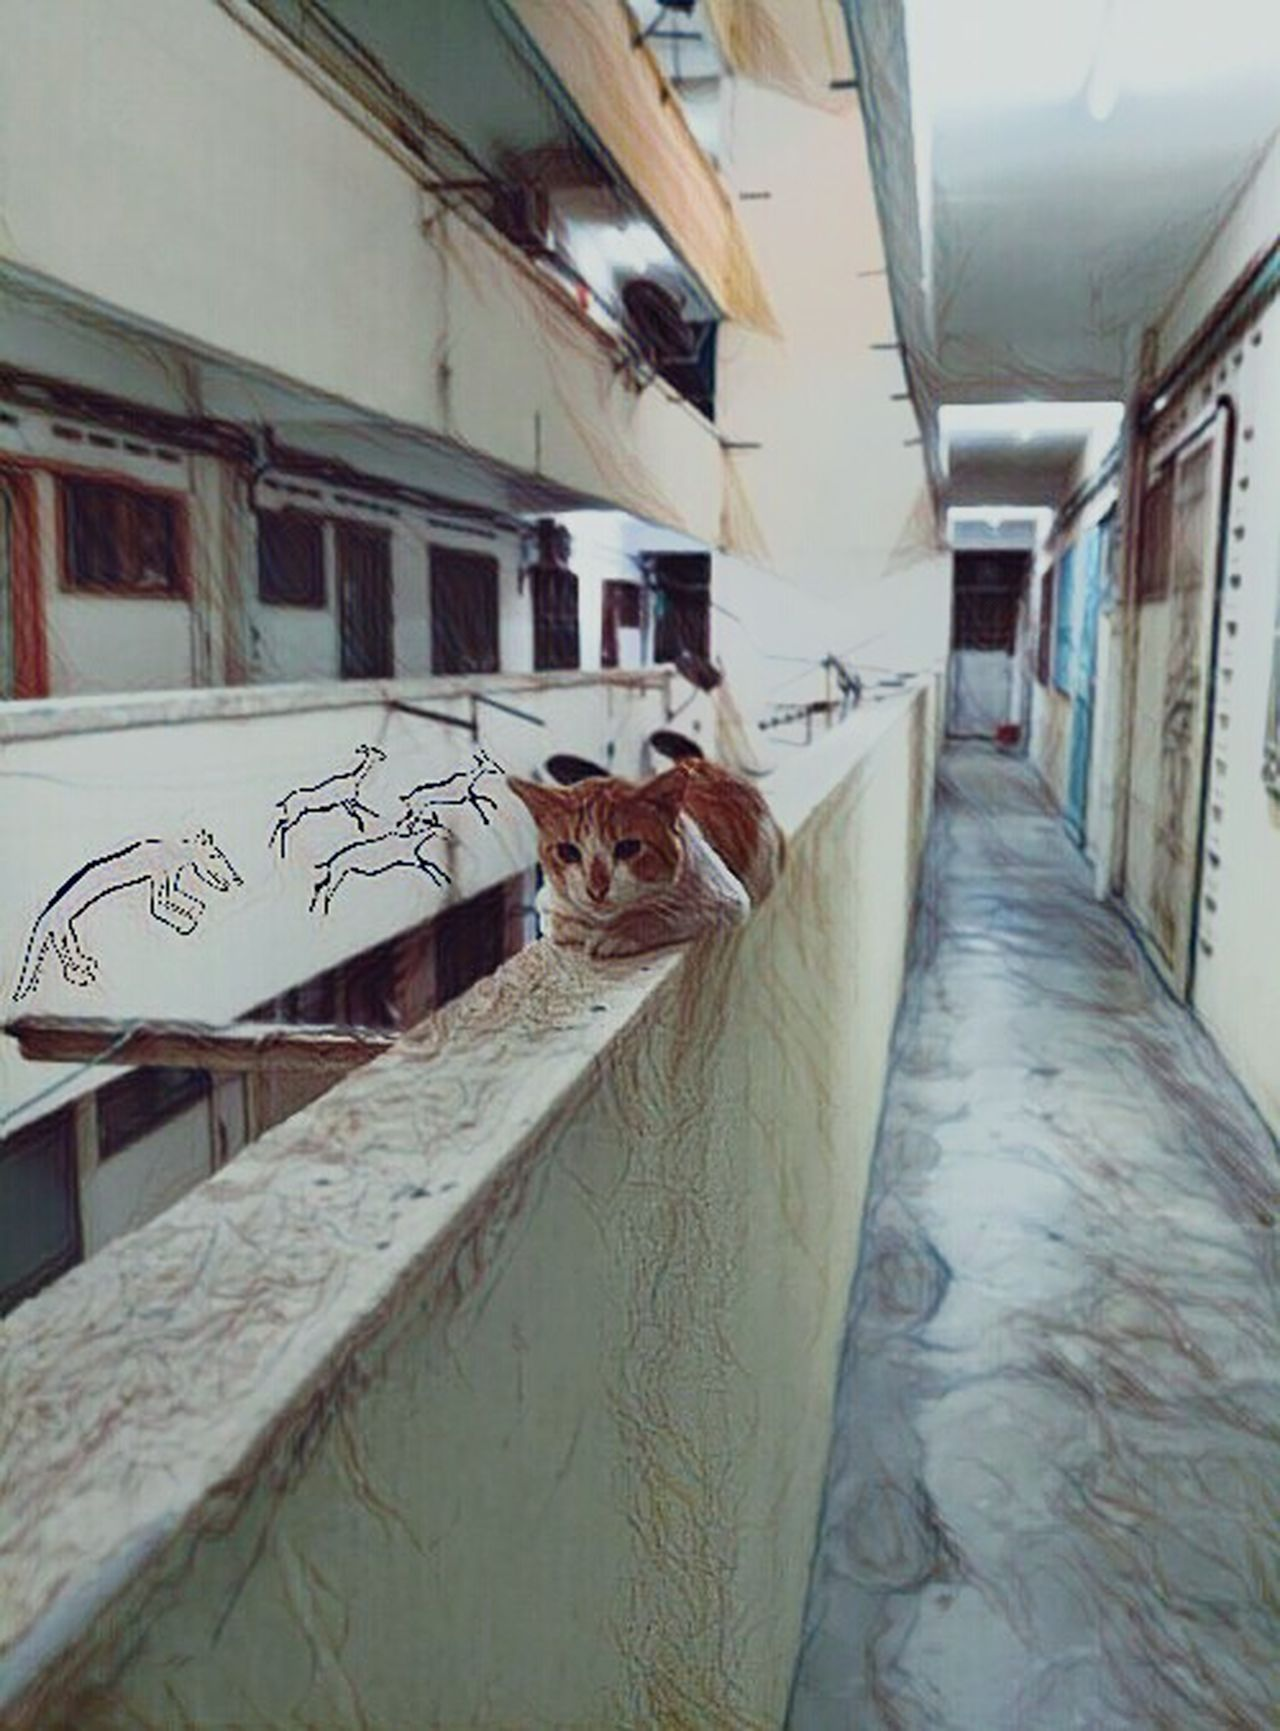 Lonely Indoors  No People Architecture Day Cat Catsofinstagram Cat Lovers Catstagram Animals Animal Photography Animal Portrait Animalsofinstagram Feline Feline Portraits FelineDomesticus Feline, Tomcat, Tom, Kitten, Mouser; Alley Cat; Kitty, Furball; First Eyeem Photo